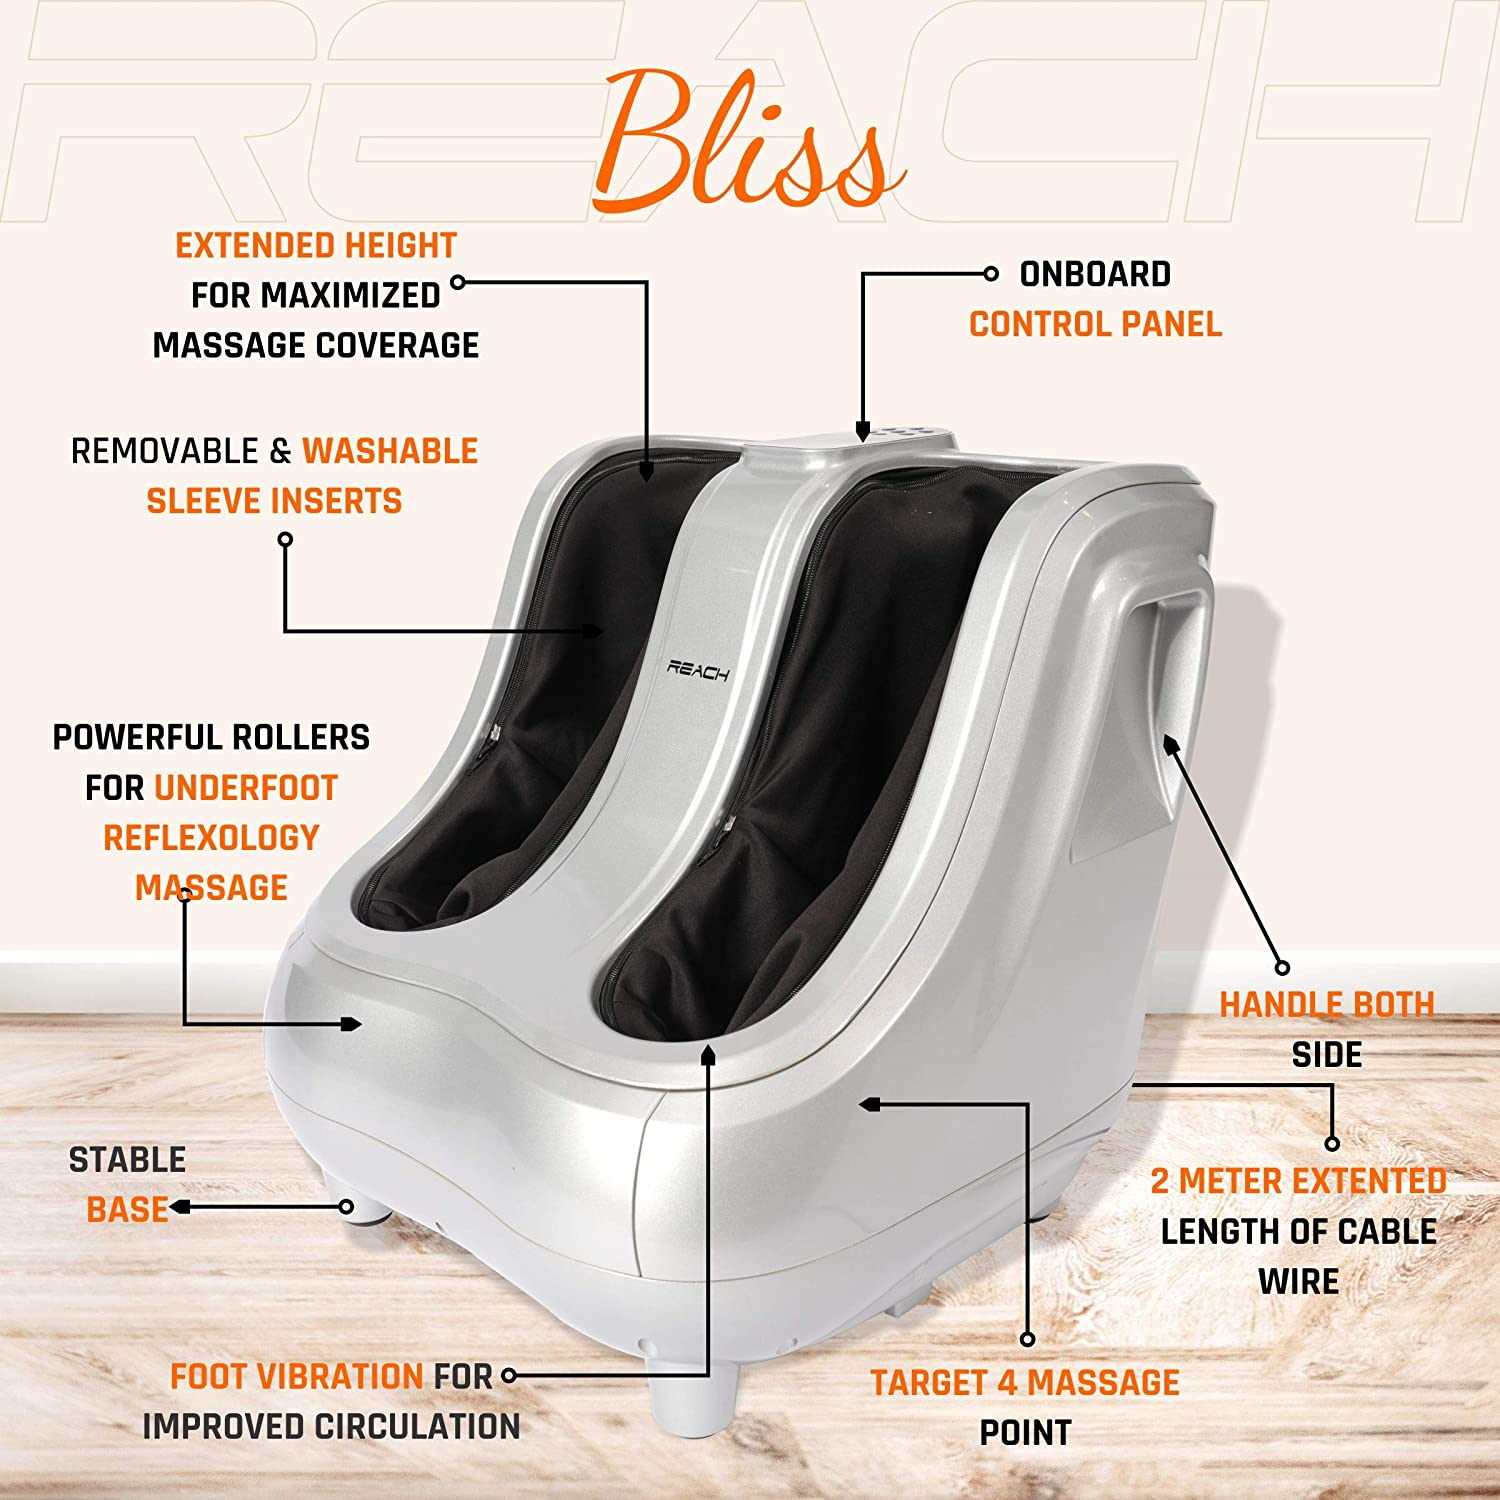 Detailed labelled diagram of the features of a Reach Bliss Leg Massager.